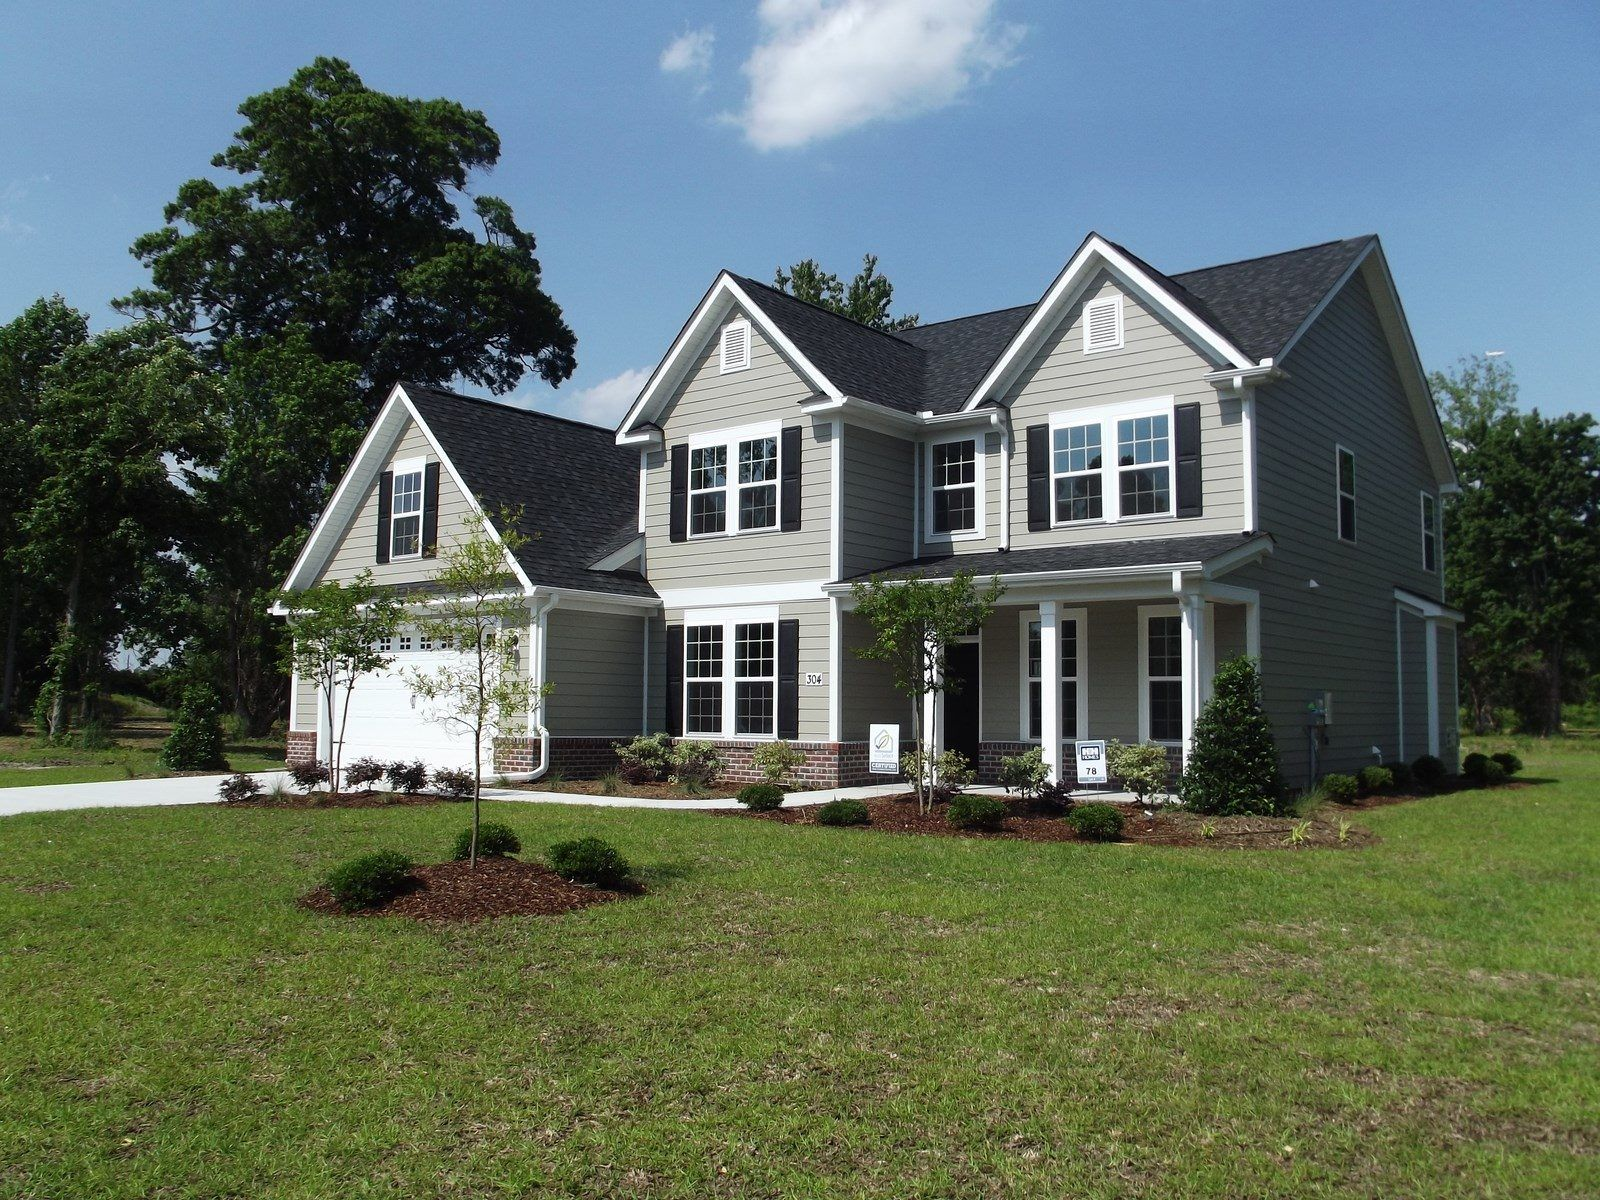 THE KENT 3 CAR GARAGE PLAN By H Homes at Towne Pointe